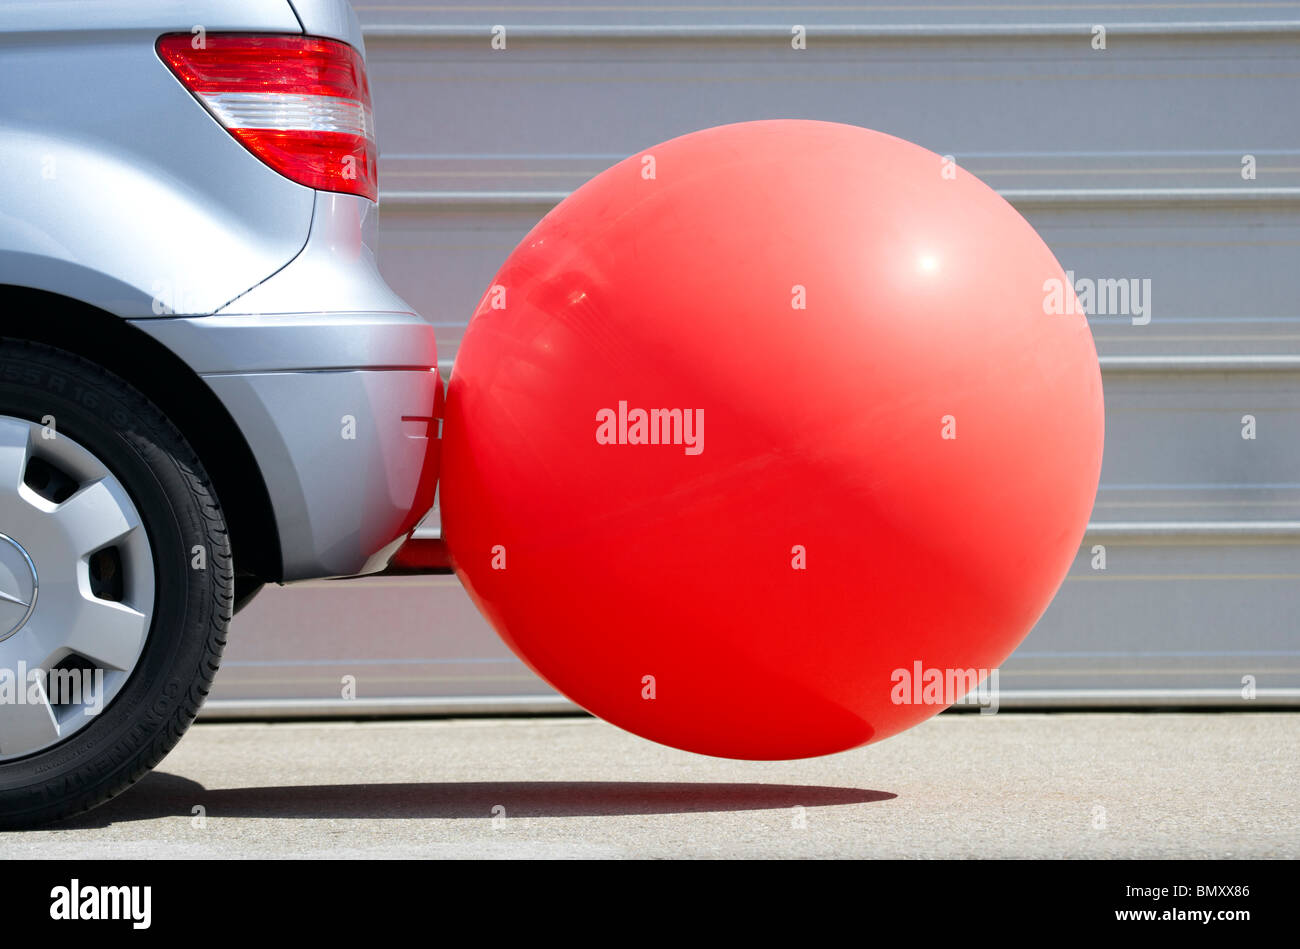 Rear of a car with a baloon on the exhaust pipe - Stock Image